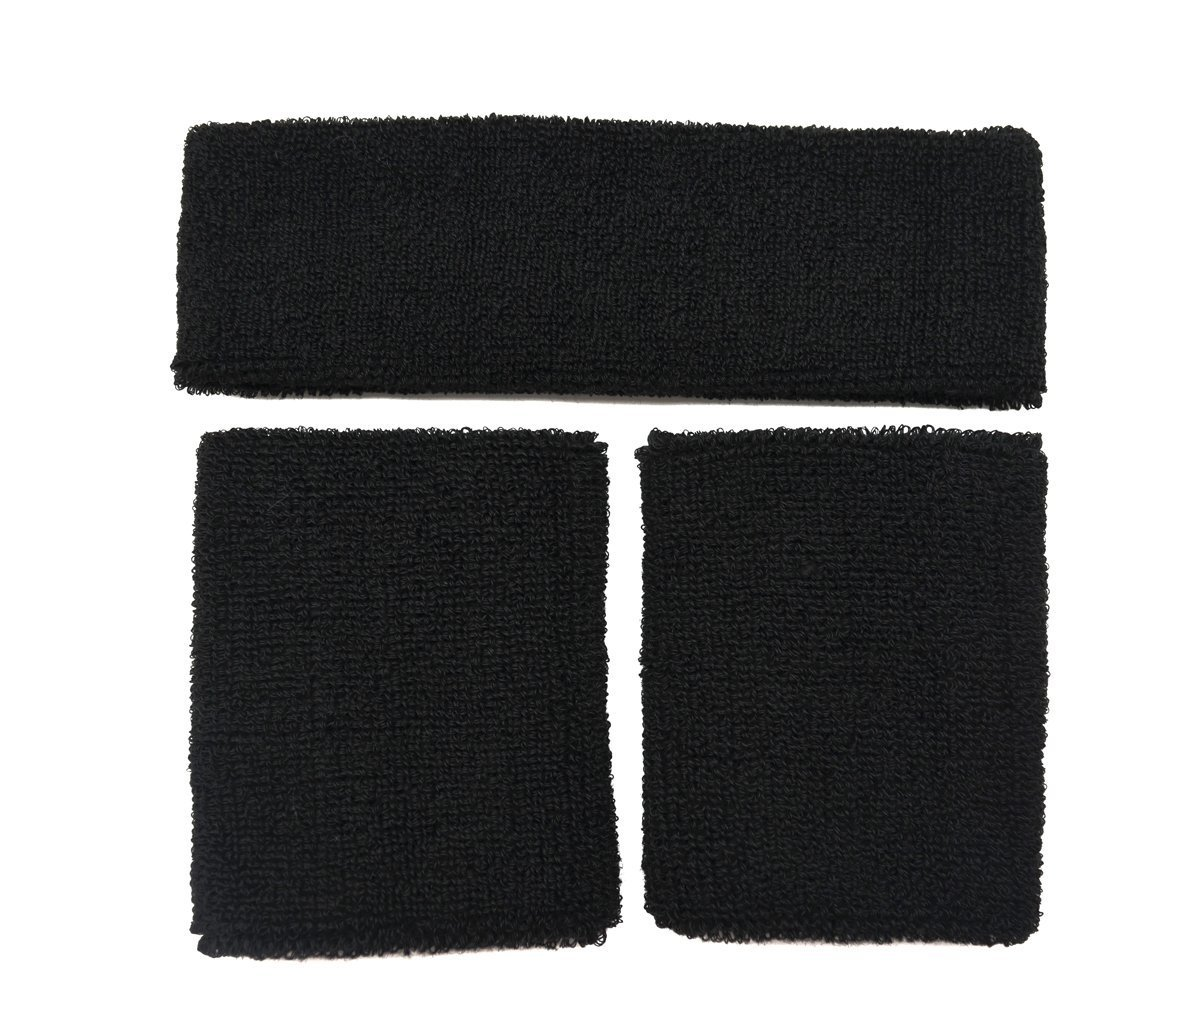 Meta-U Wholesale 5 Sets of Black Thicken Cotton Sports Sweatbands SW100210X5_US